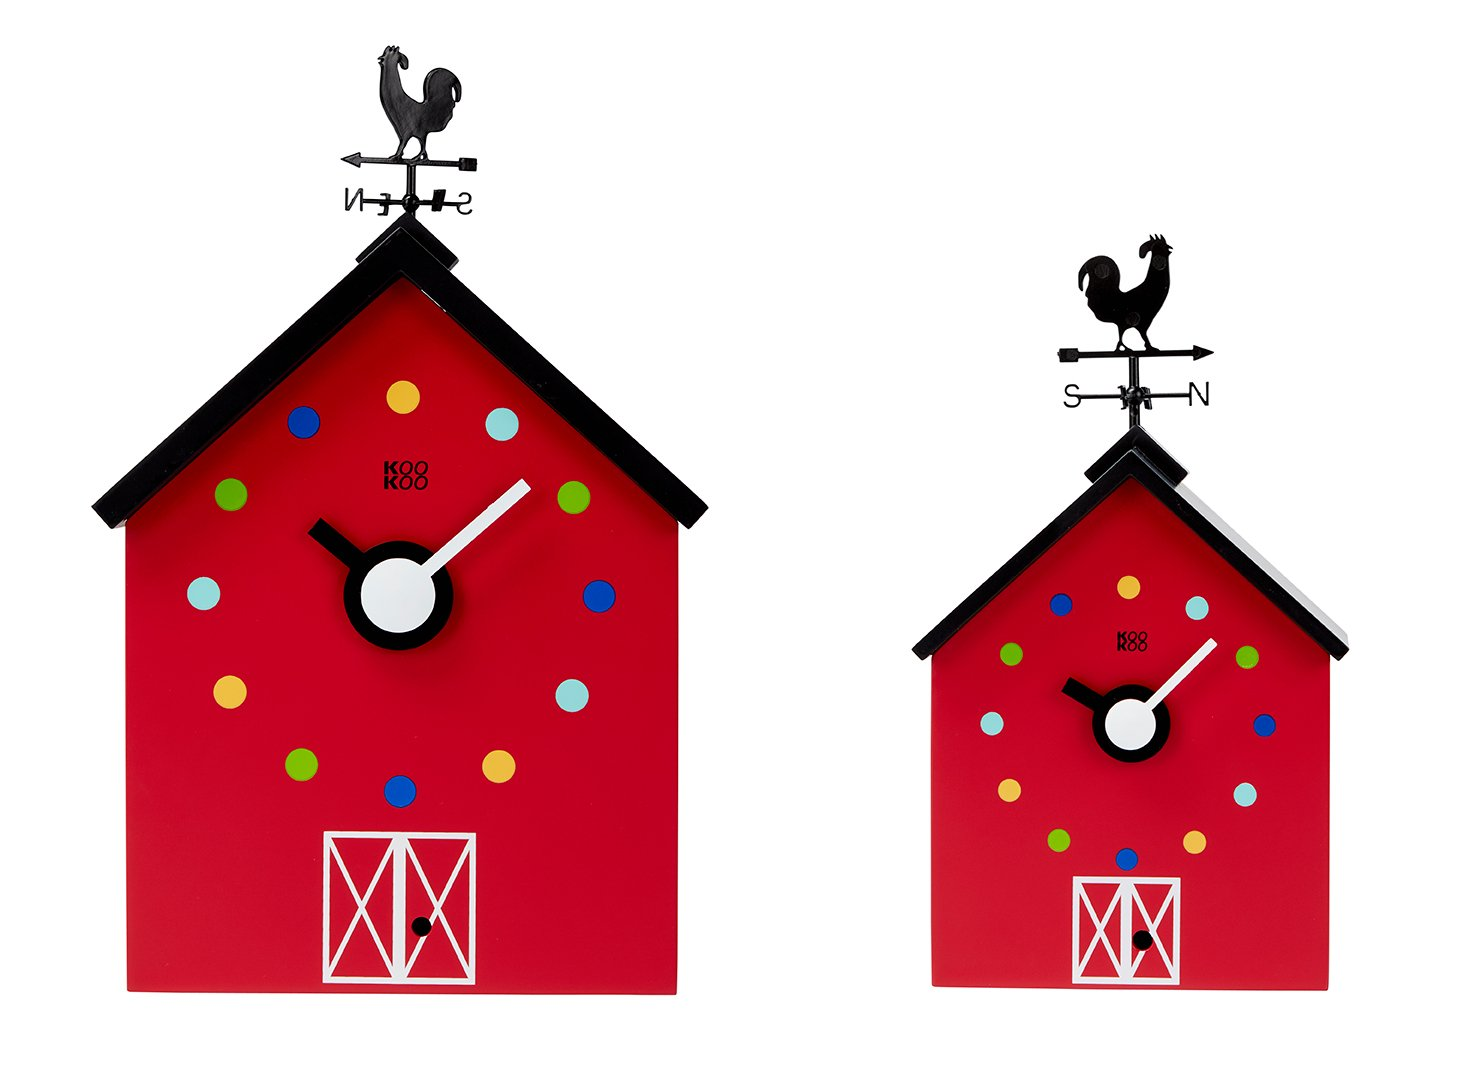 KOOKOO RedBarn Small, Cuckoo Clock, Farmhouse Clock Made of MDF Wood, Striking Design, Including 12 Farm Animals and a Rooster, Animal Voices Kids Present as of 6 Years